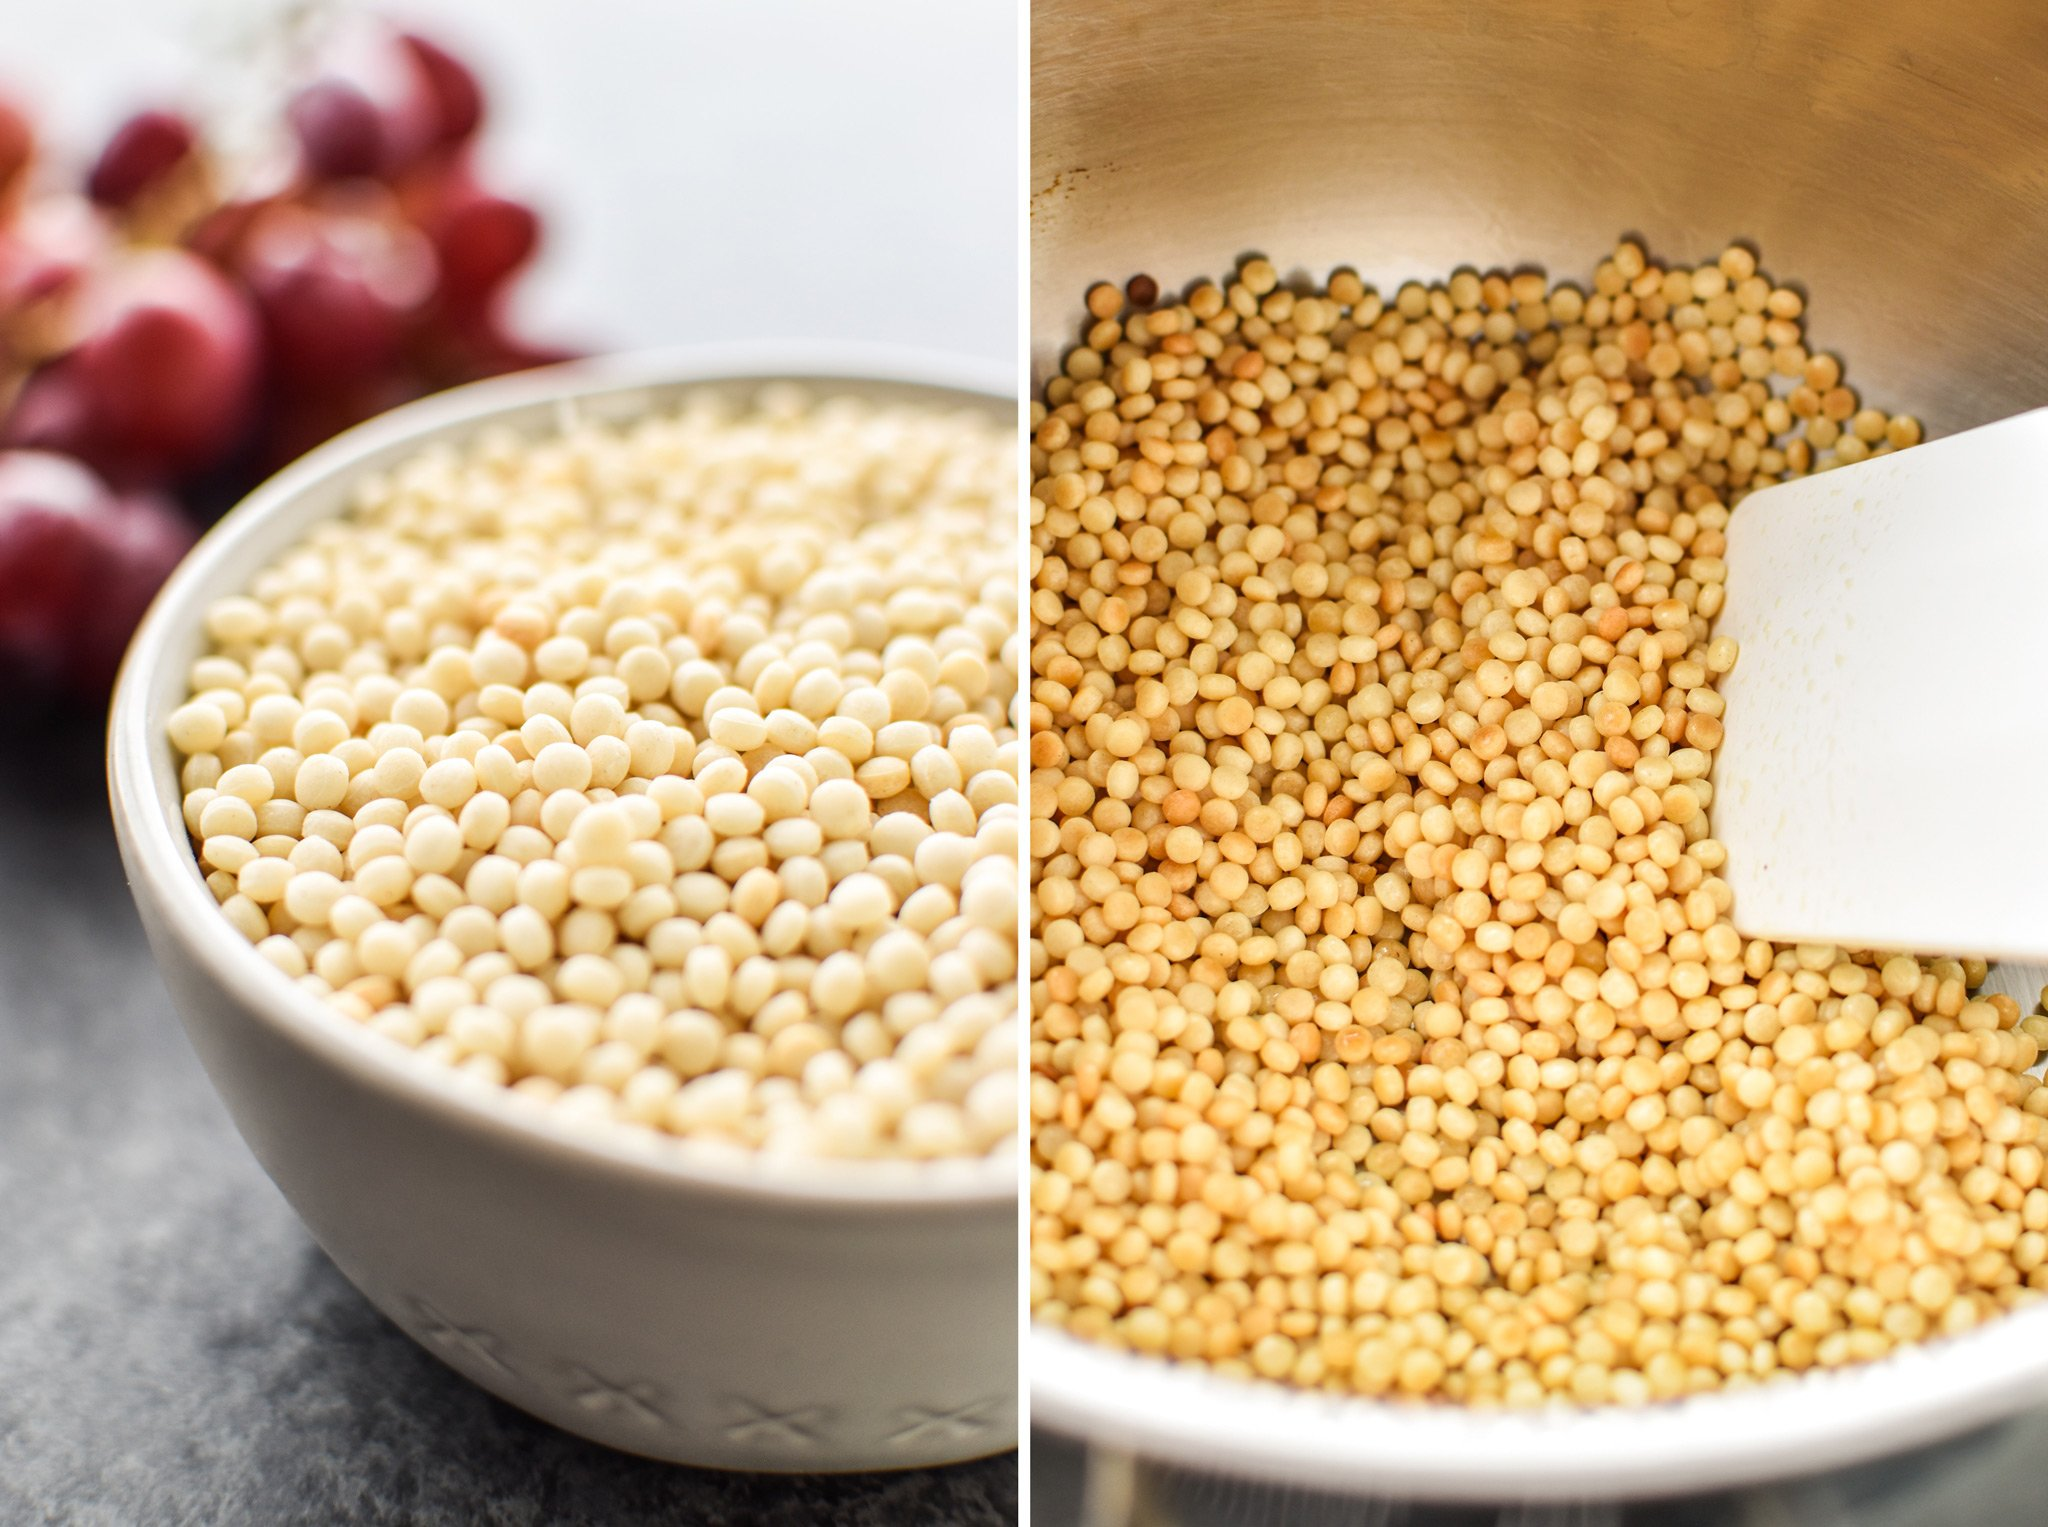 Left: Couscous before cooking, measured in a 1 cup bowl. Right: Quinoa during toasting in a pan with olive oil.